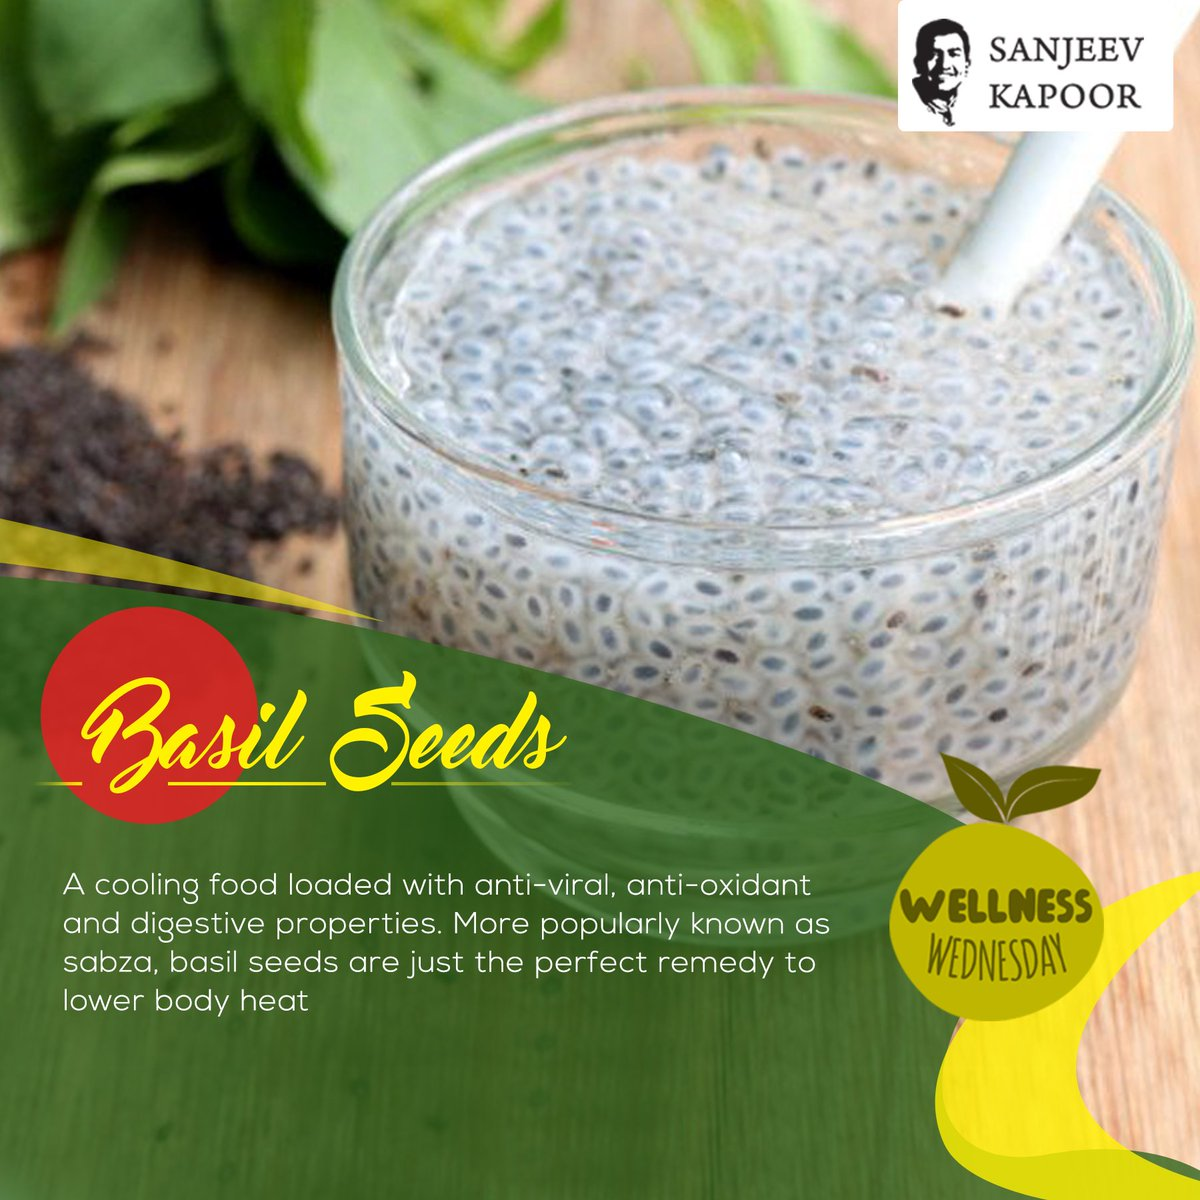 Sanjeev Kapoor's photo on #WellnessWednesday